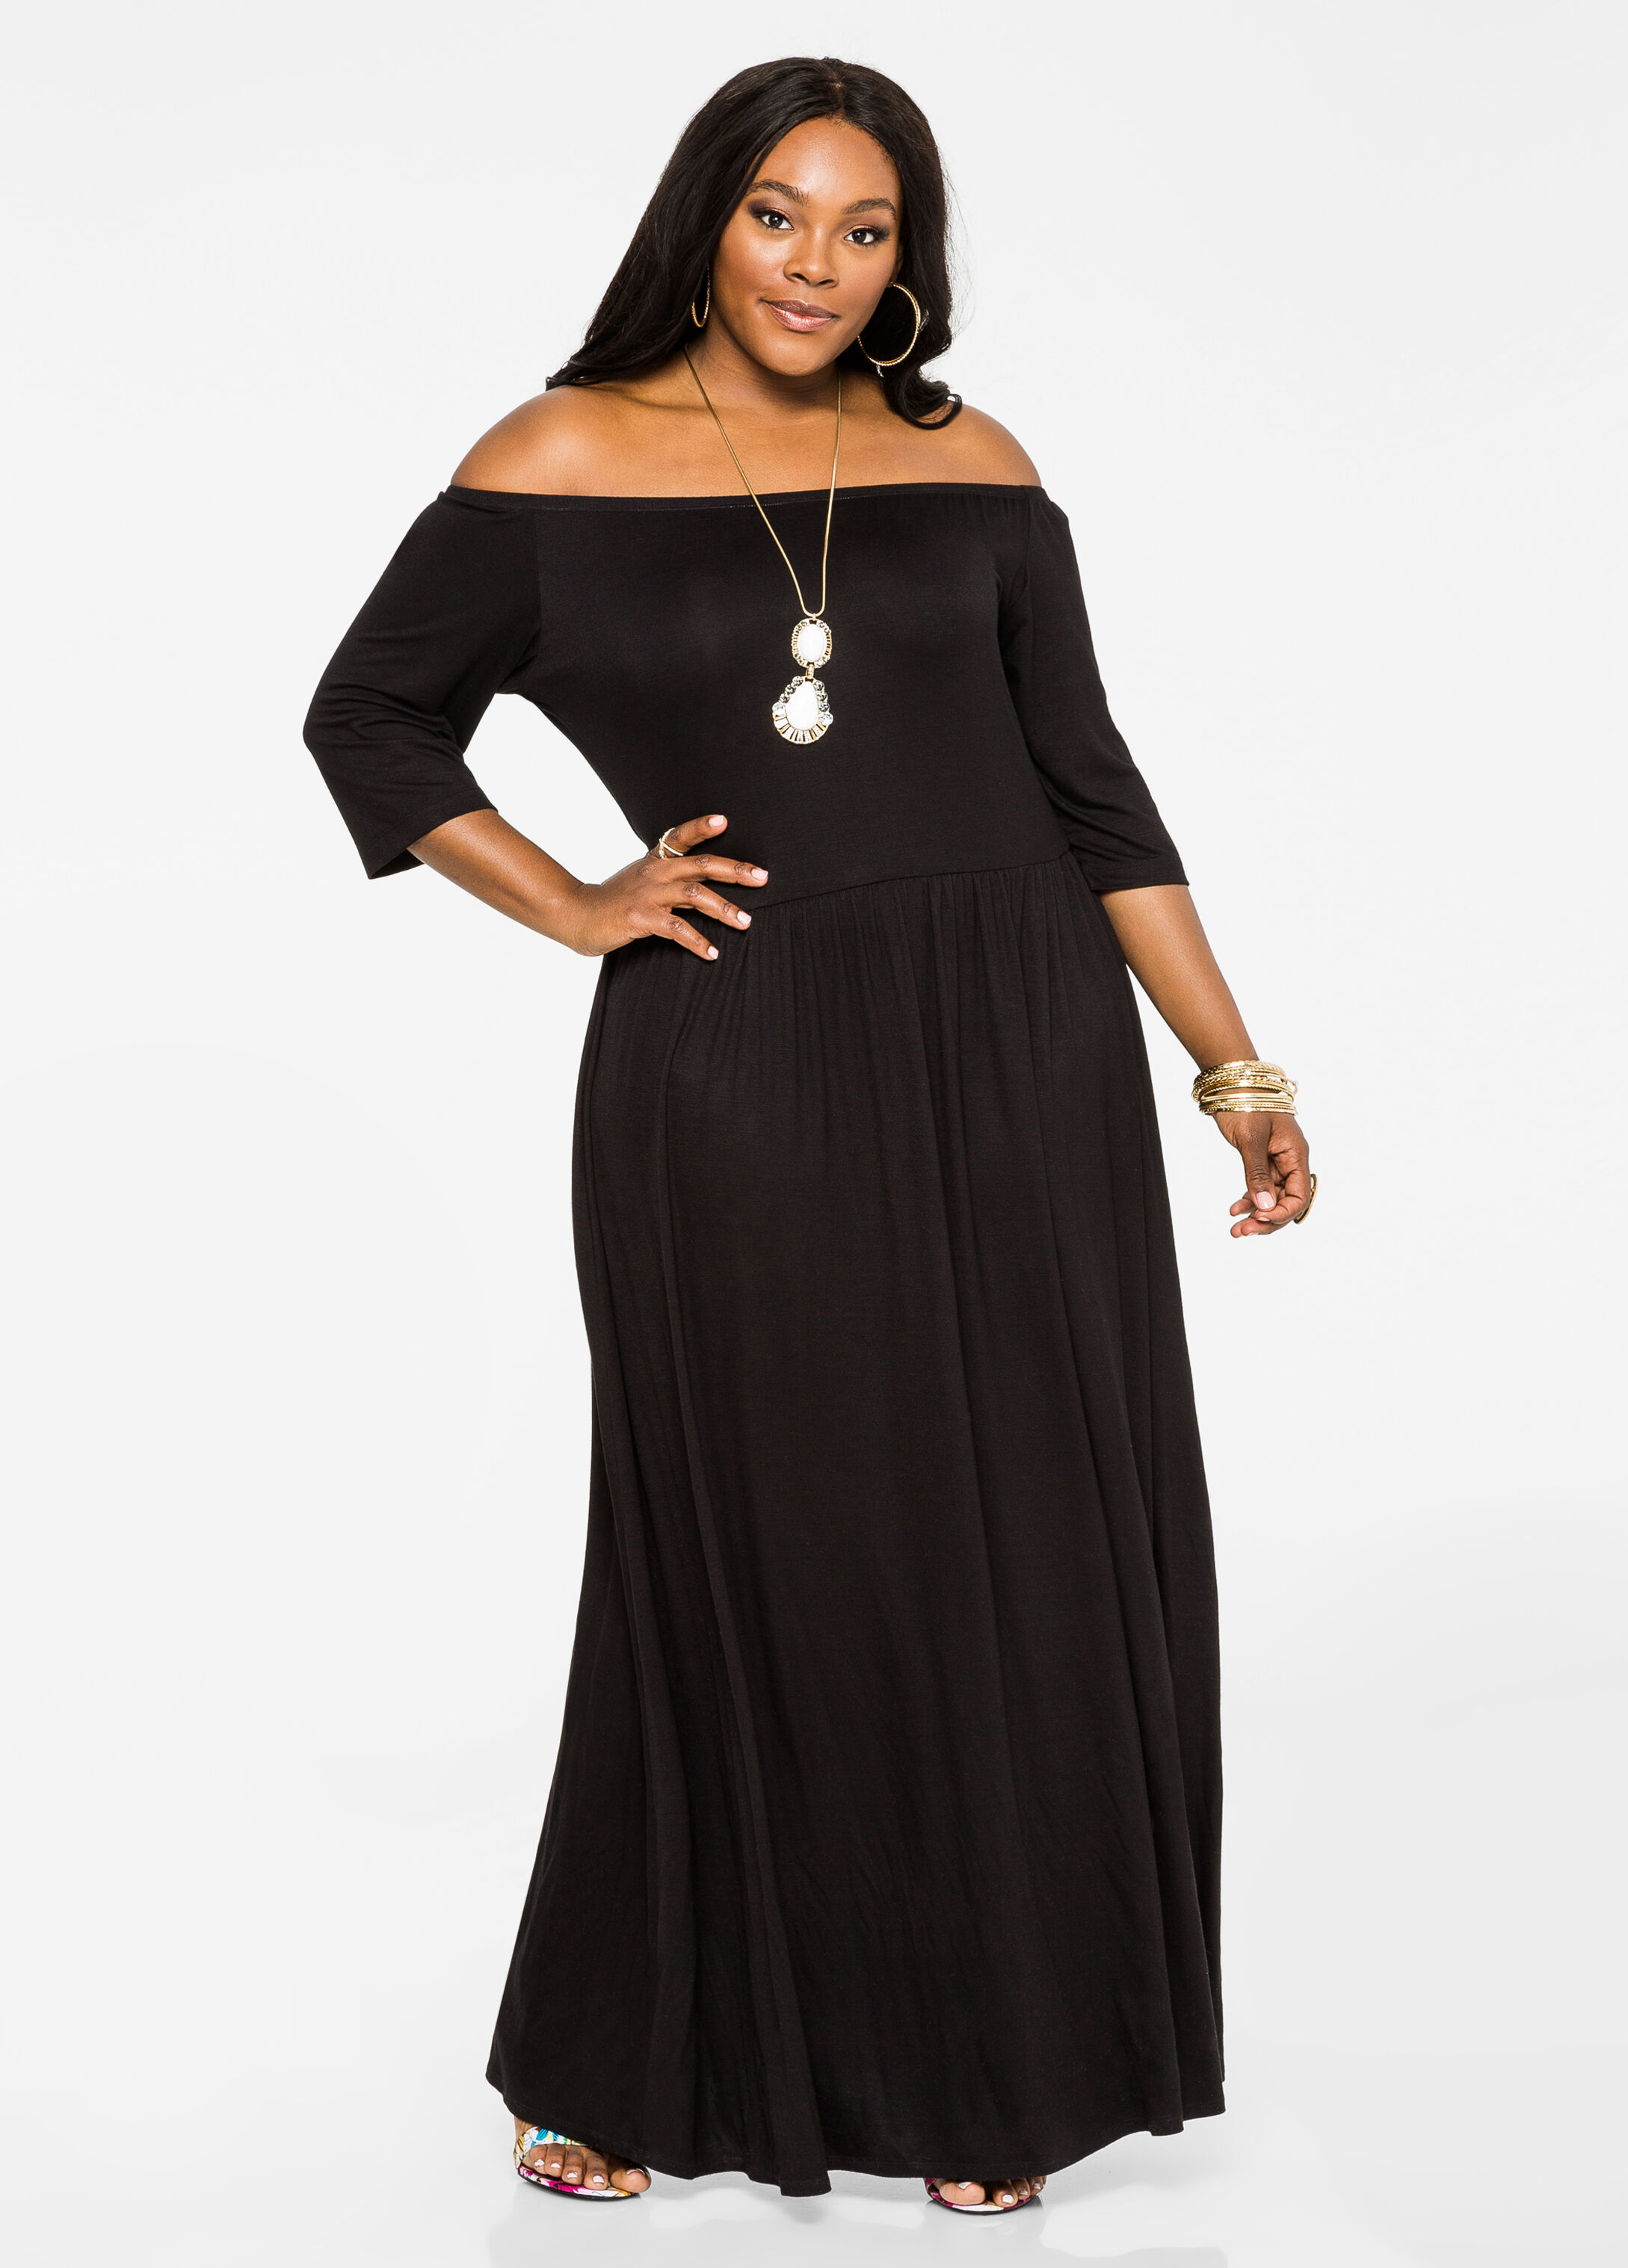 Plus Size Dresses In Sizes 12 to 36 | Ashley Stewart